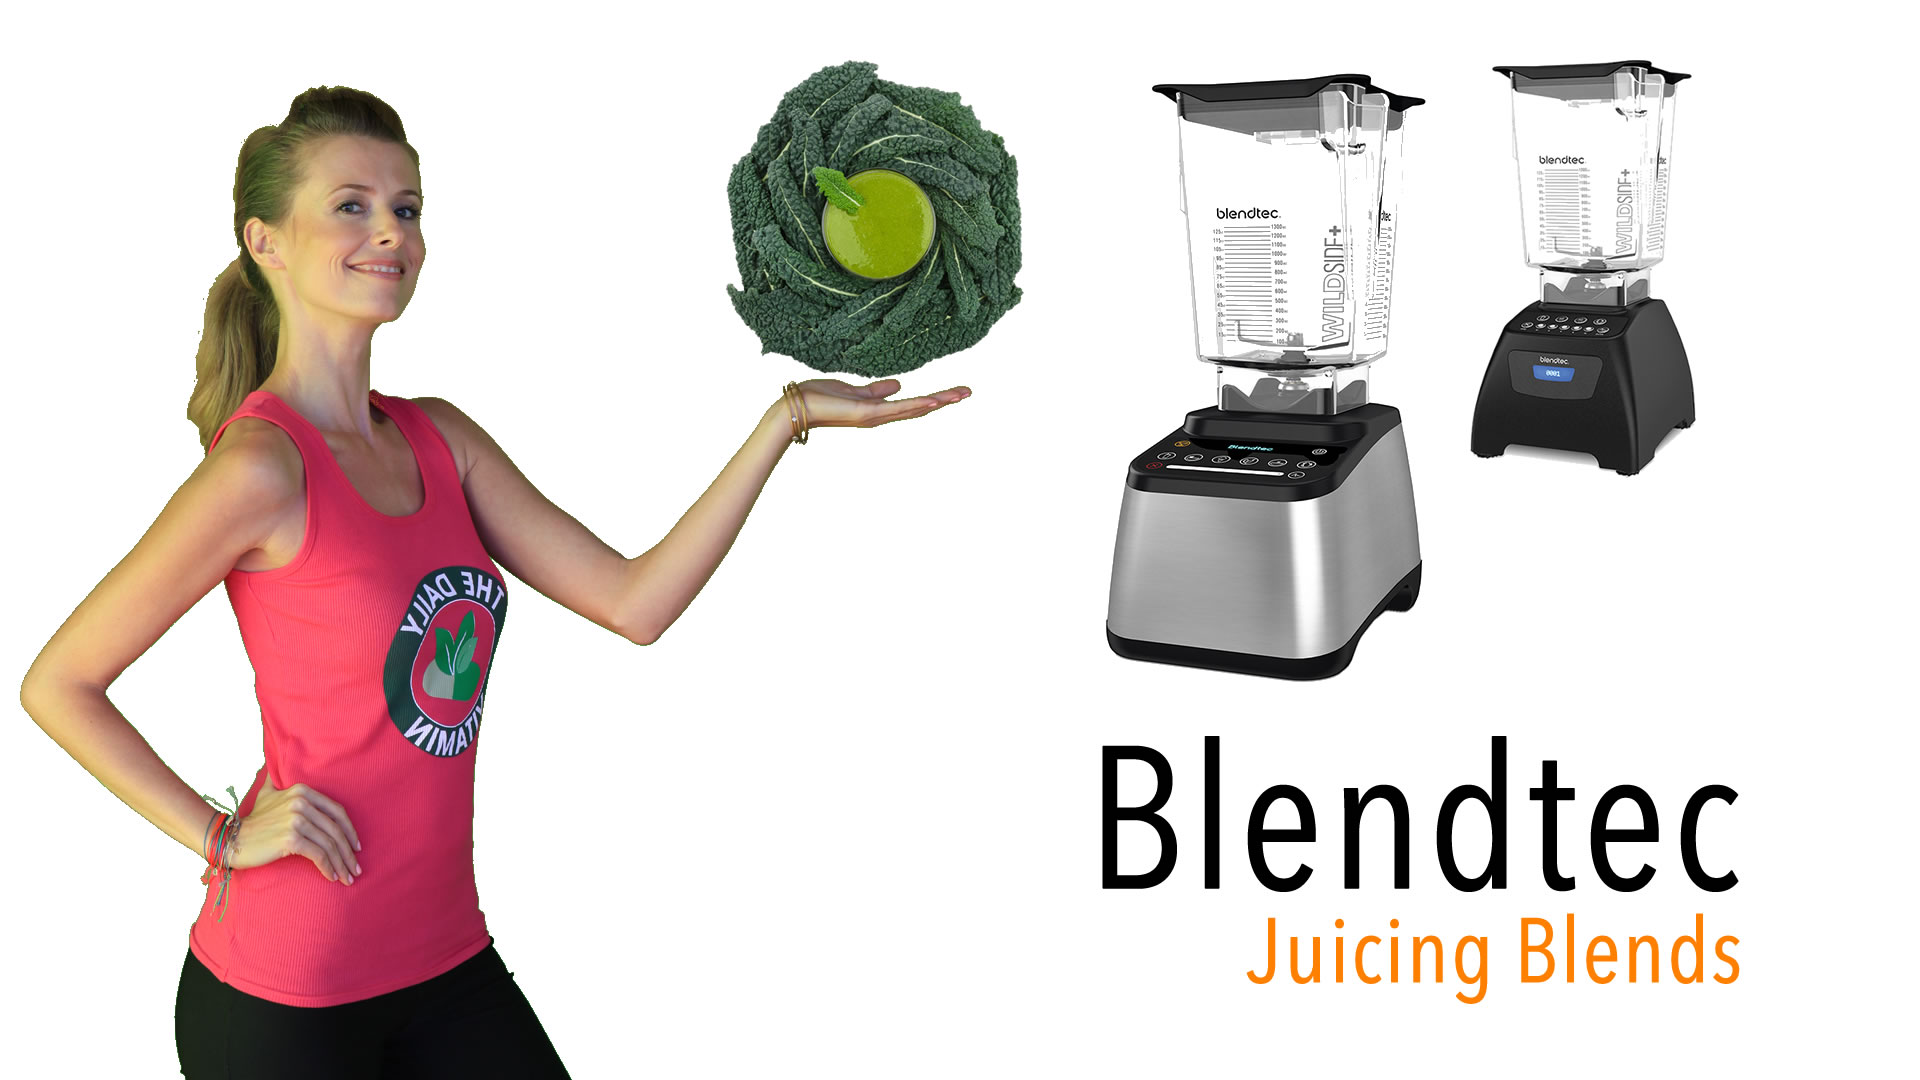 blendtec, b lendtec, blendtech, blender, juicing, juice, juices, blendtec juicing, juicing recipes, recipe, recipes, blender juicing, best blender, blender for juicing, juicing blender, green juice recipes, dr. oz, dr.oz, oz, the daily vitamin, dailyvitamin, costco blender, costco blenders, costco blender, costco blenders